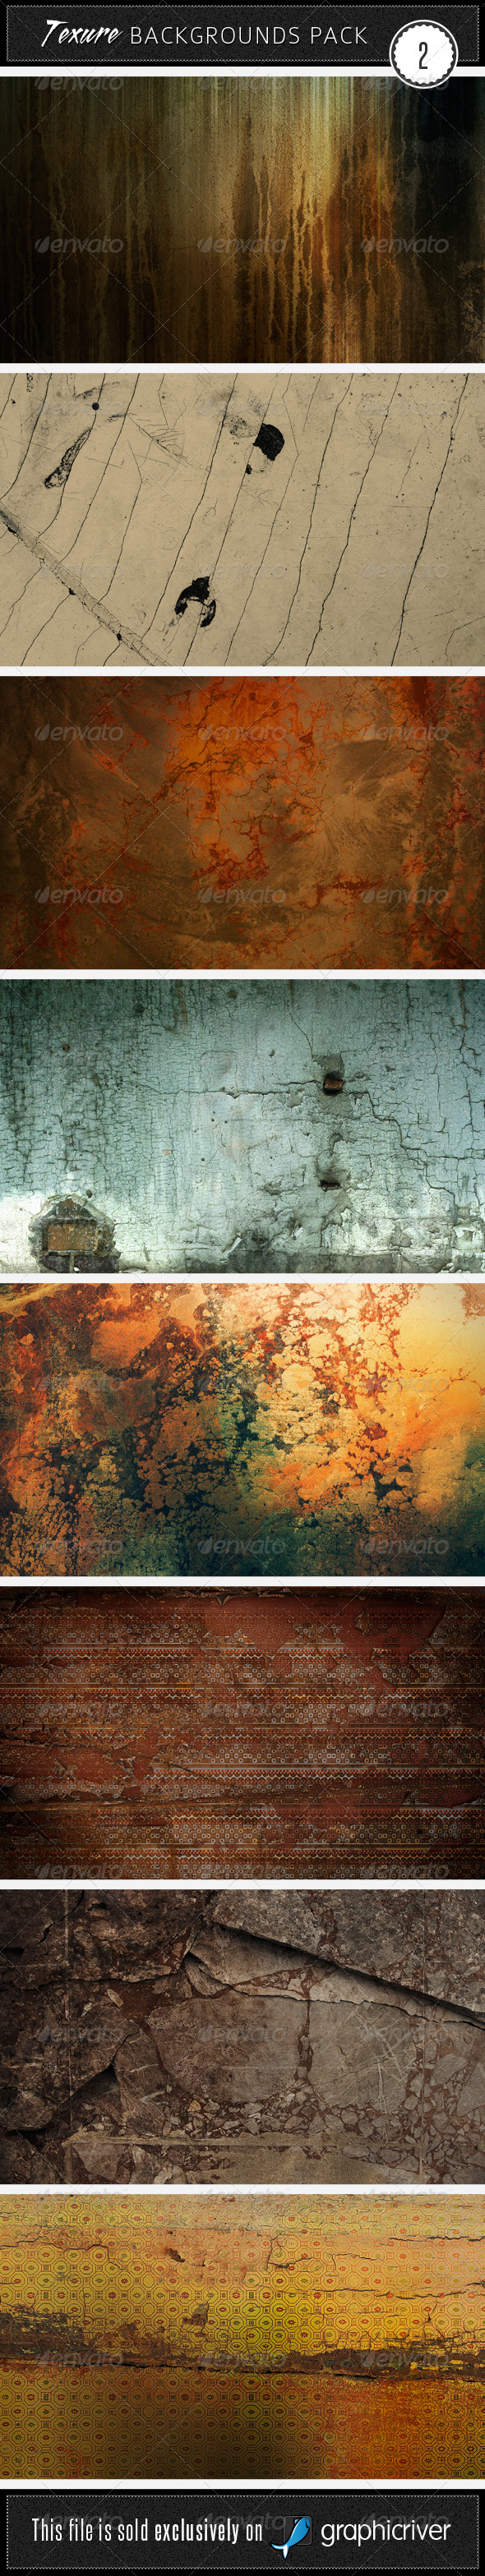 Texture Backgrounds Pack 2 - Miscellaneous Textures